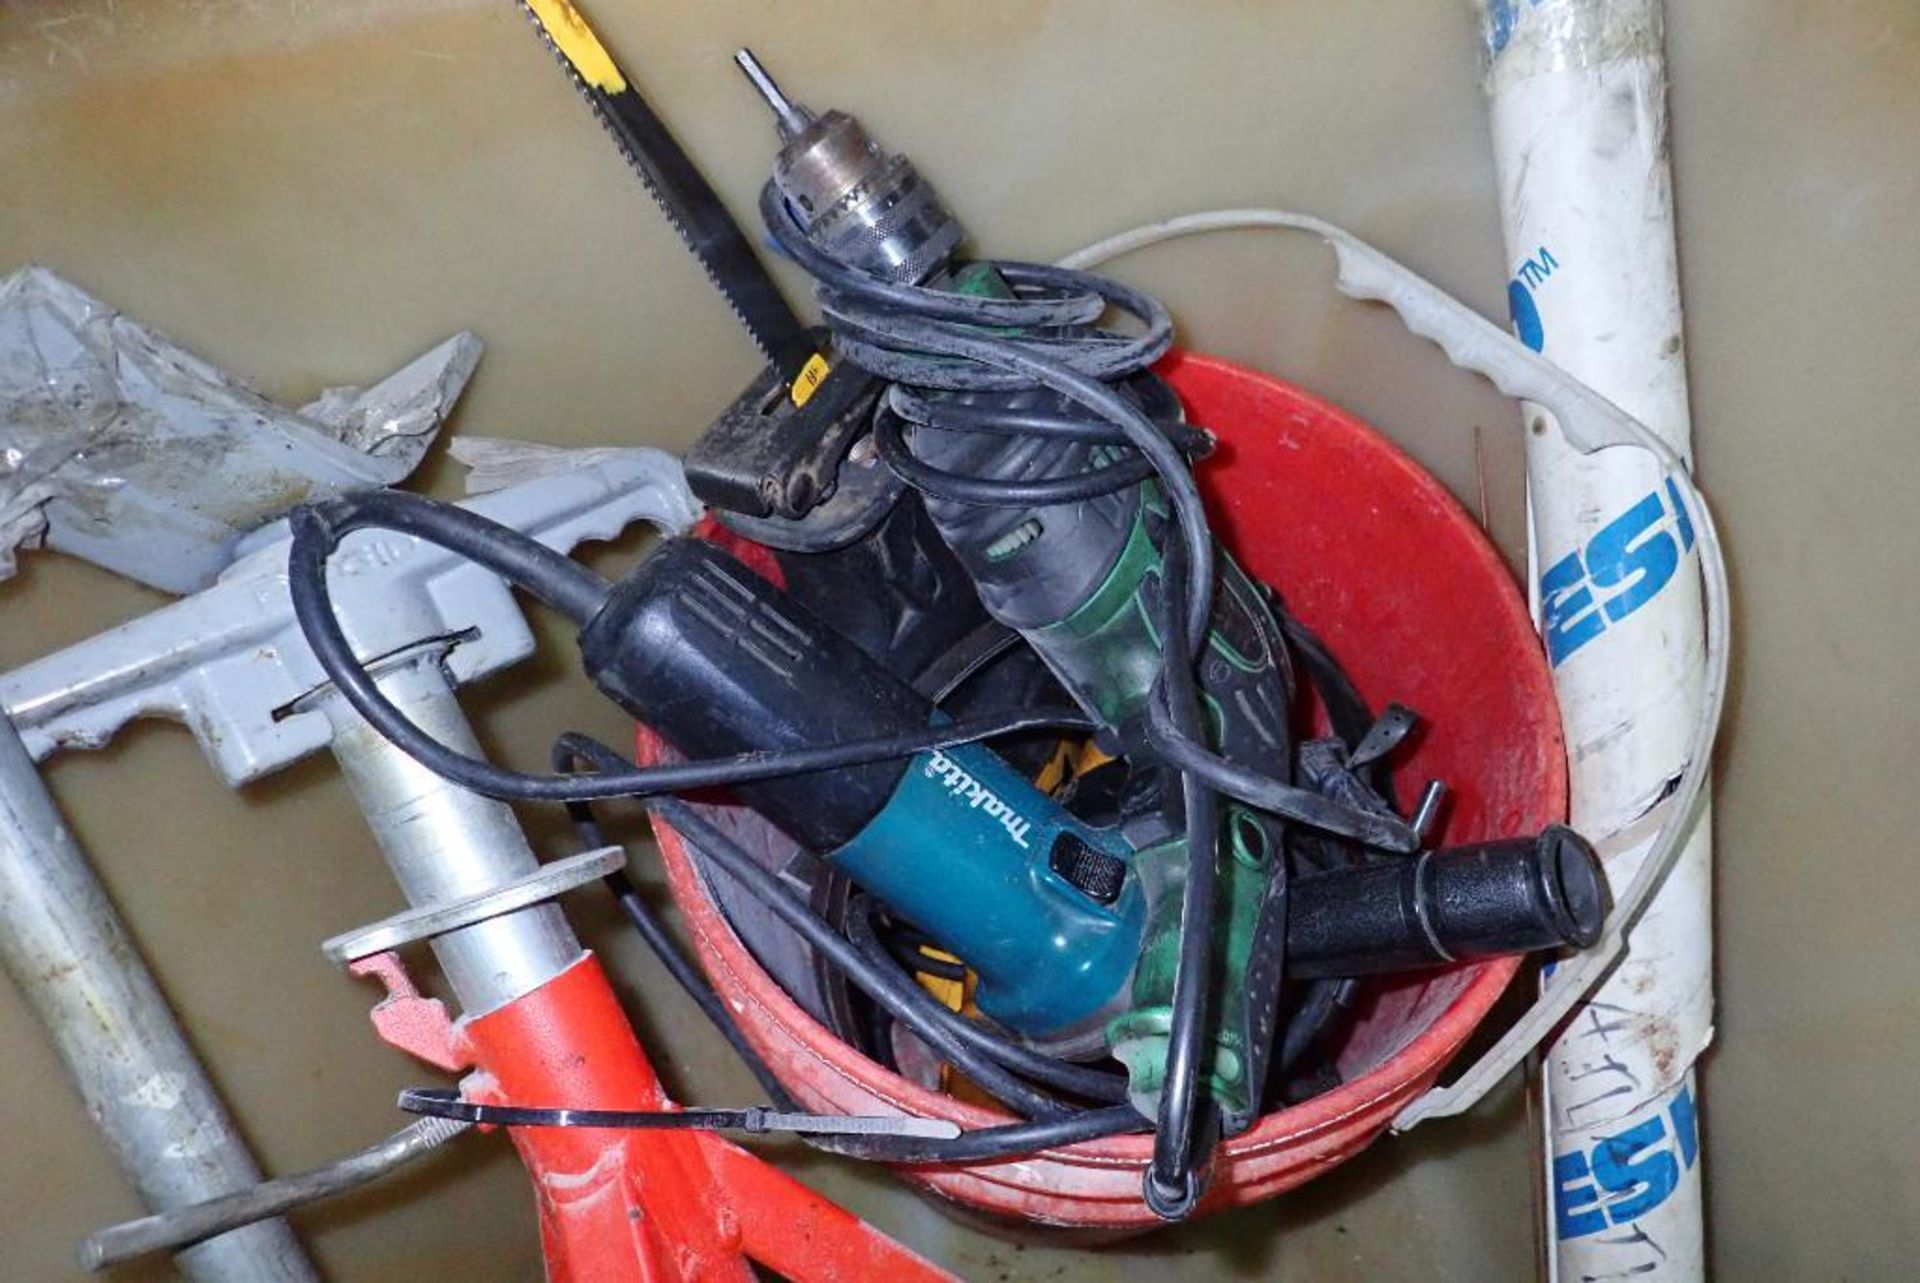 Poly tub with tools, reciprocating saw, drill, angle grinder, Rigid pipe stand, manual conduit bende - Image 3 of 4